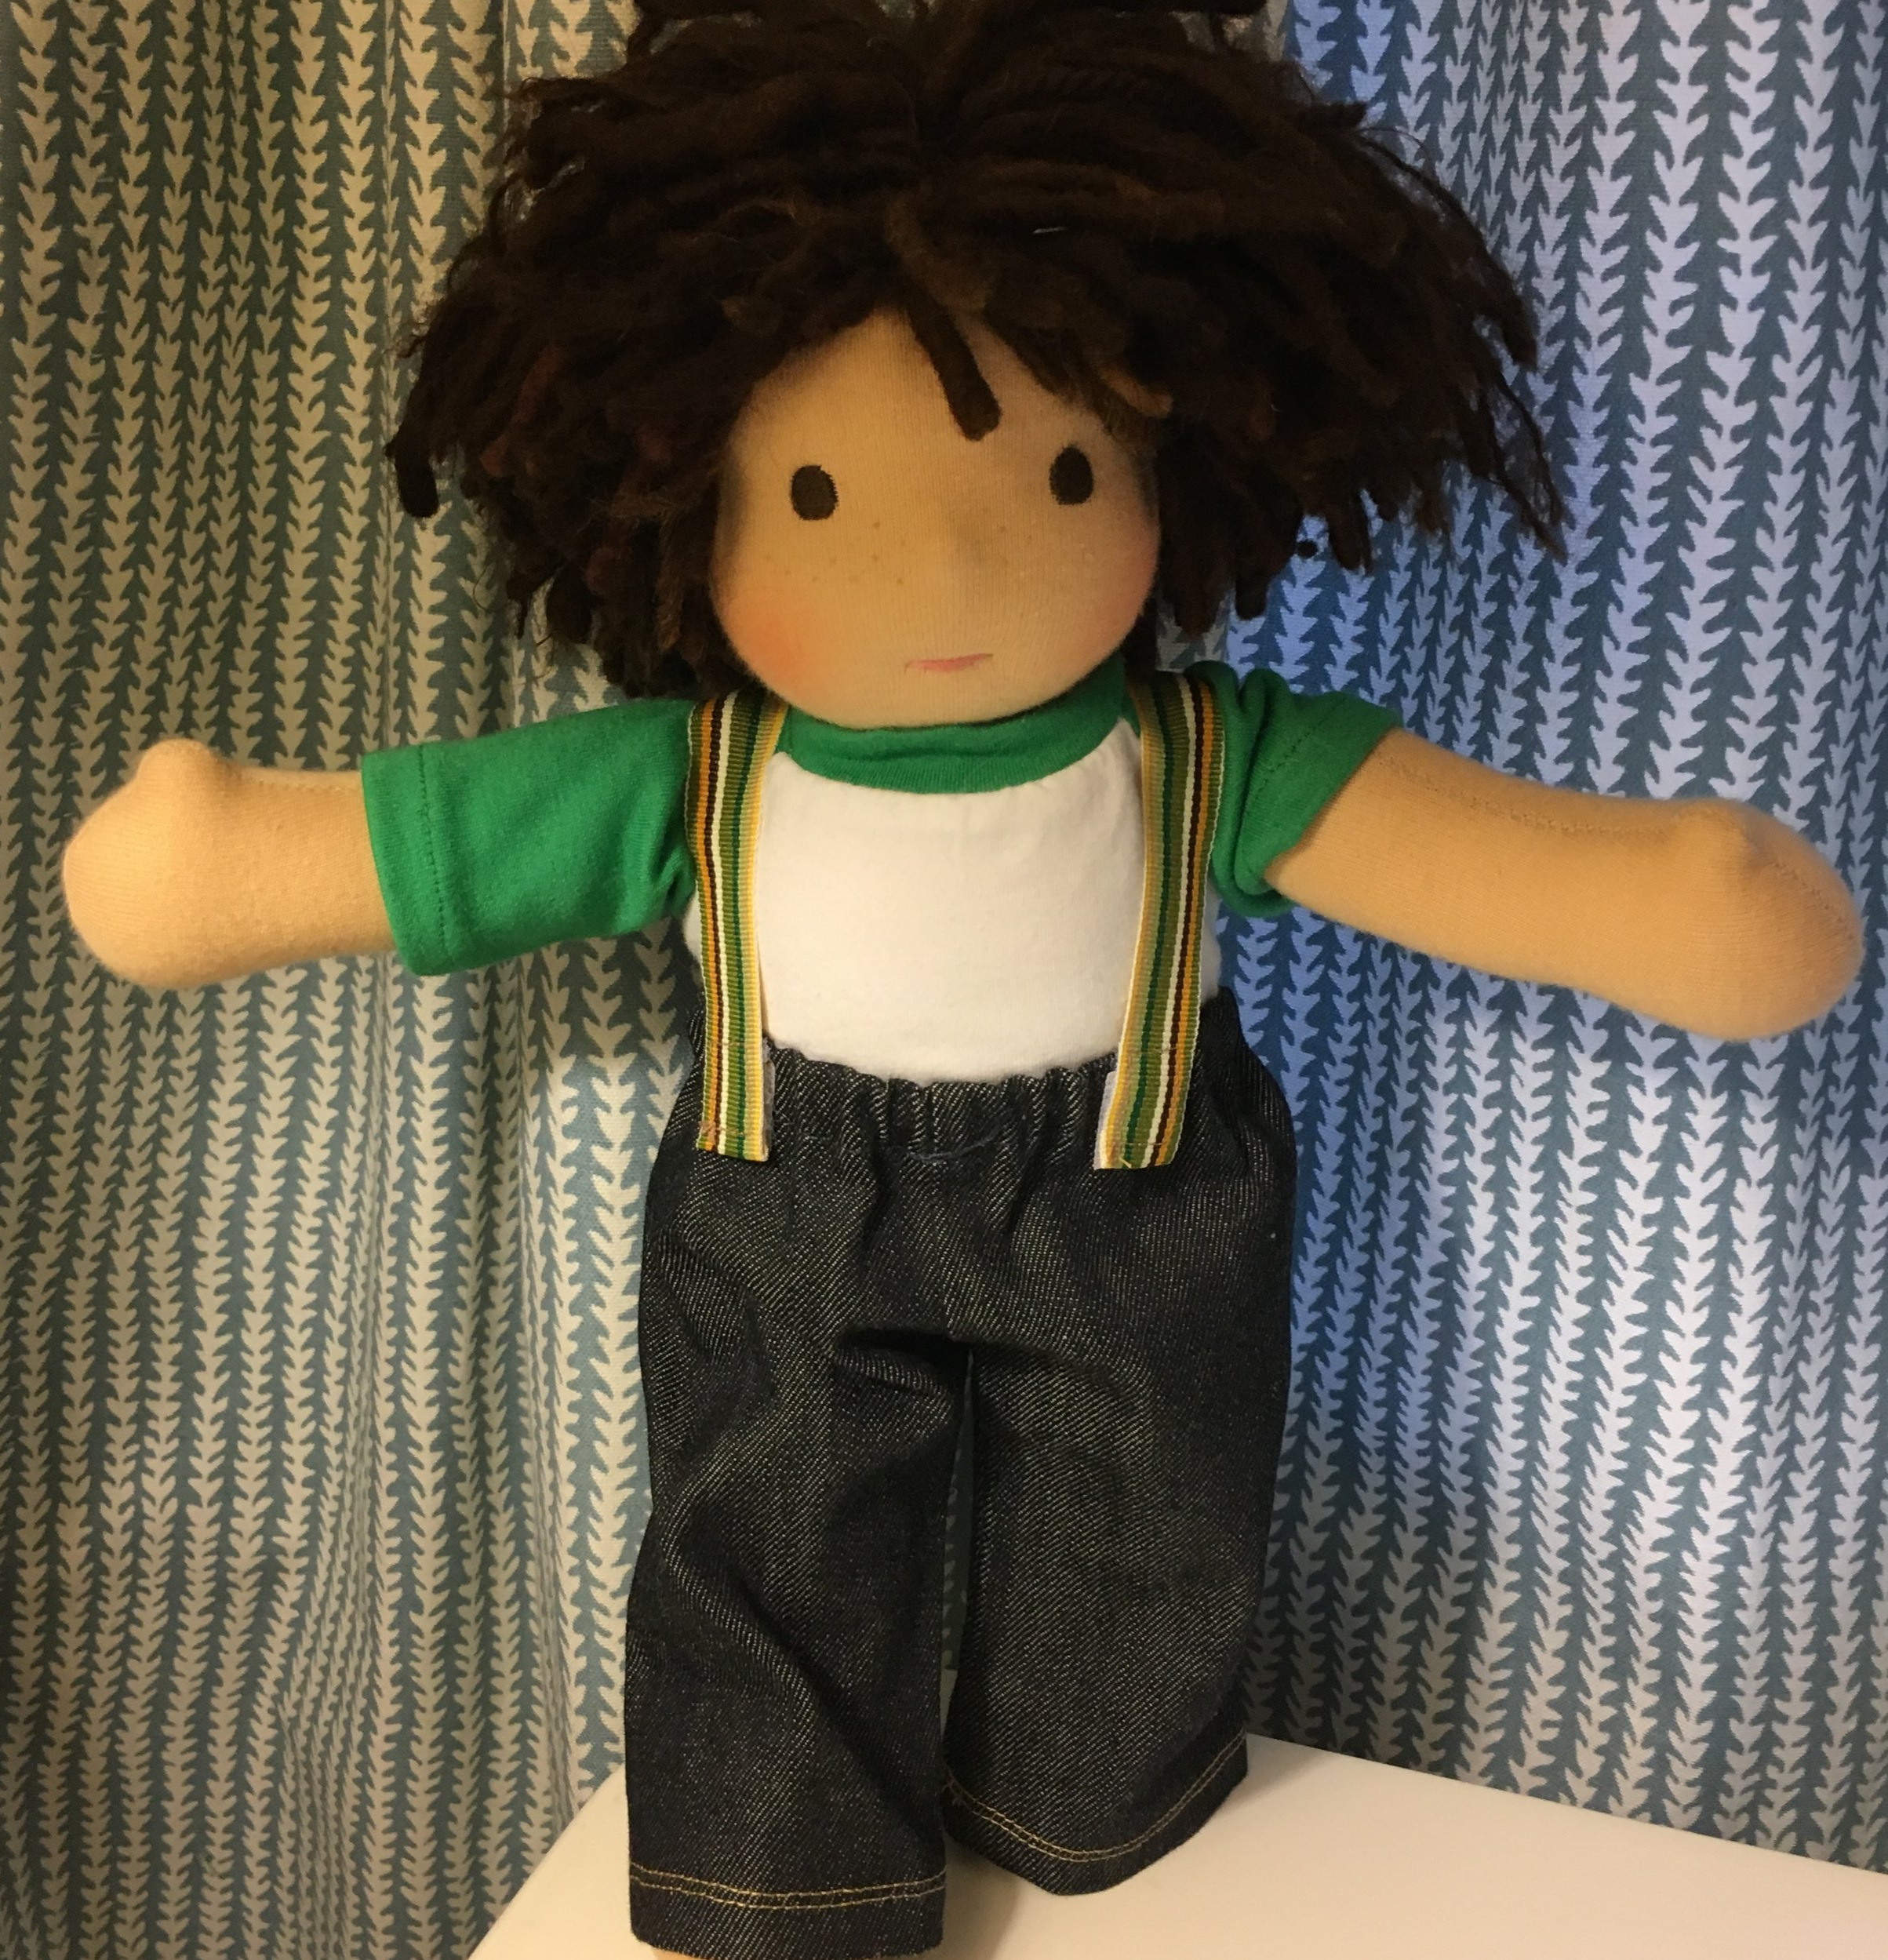 Ribbon Suspenders. The doll, jeans and T shirt were made by  Bamboletta Ltd.